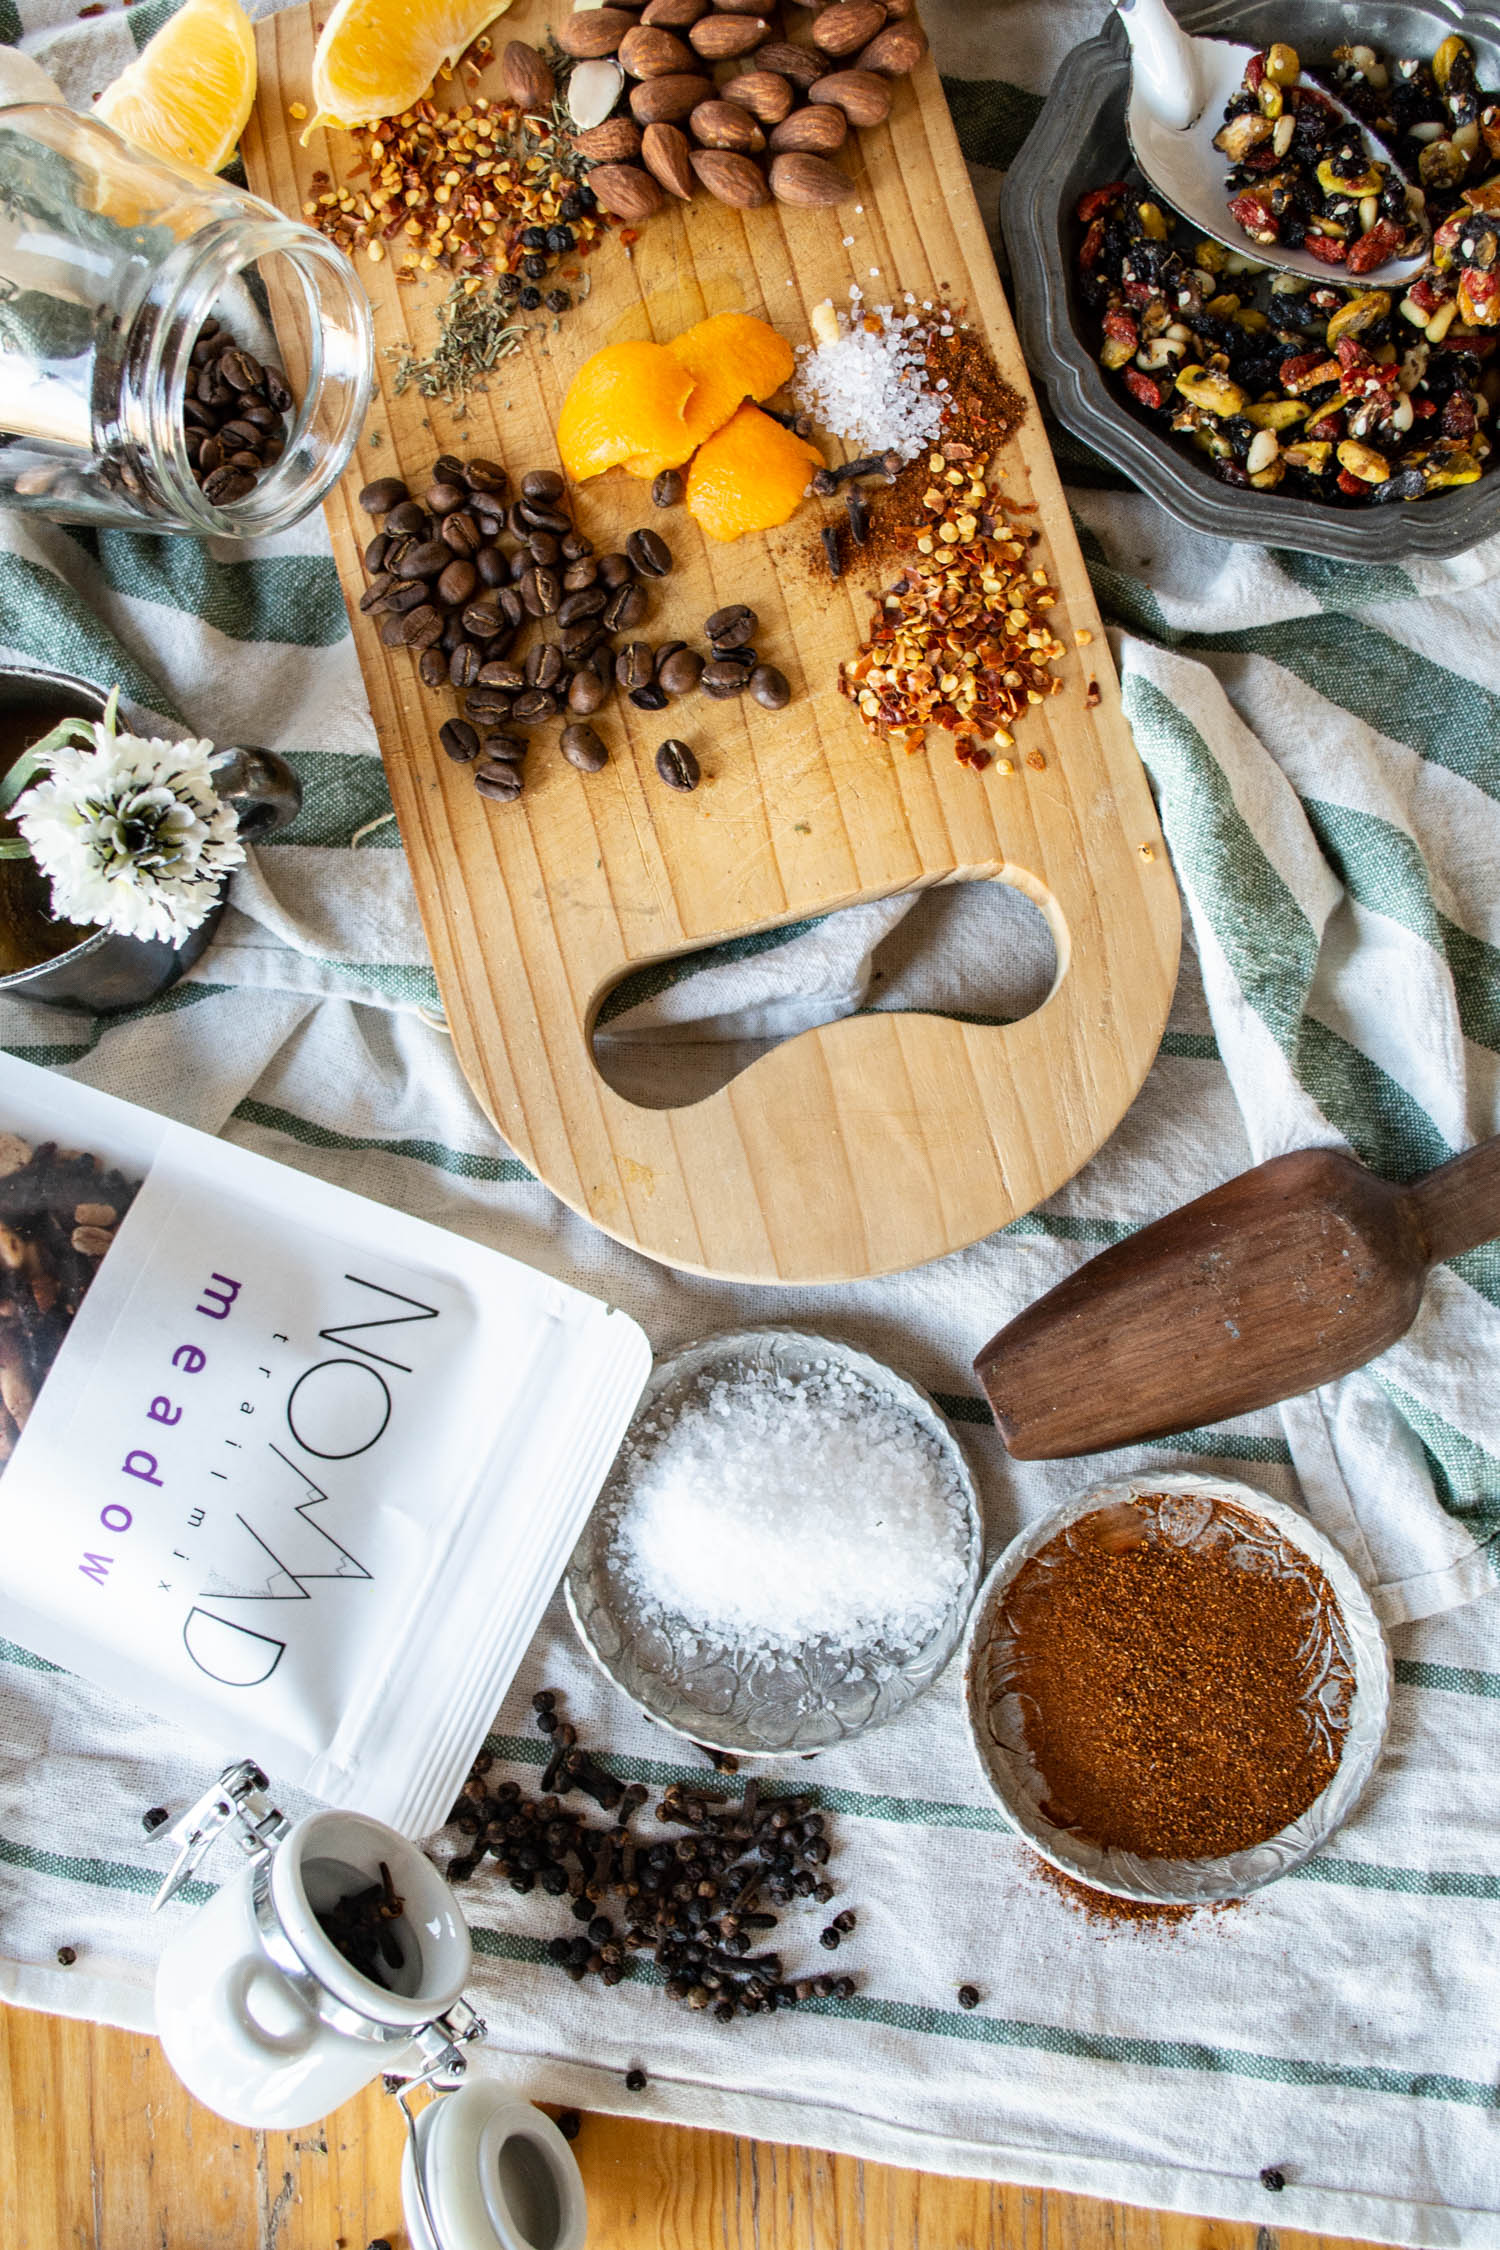 Trail mix raw ingredients. Food photography